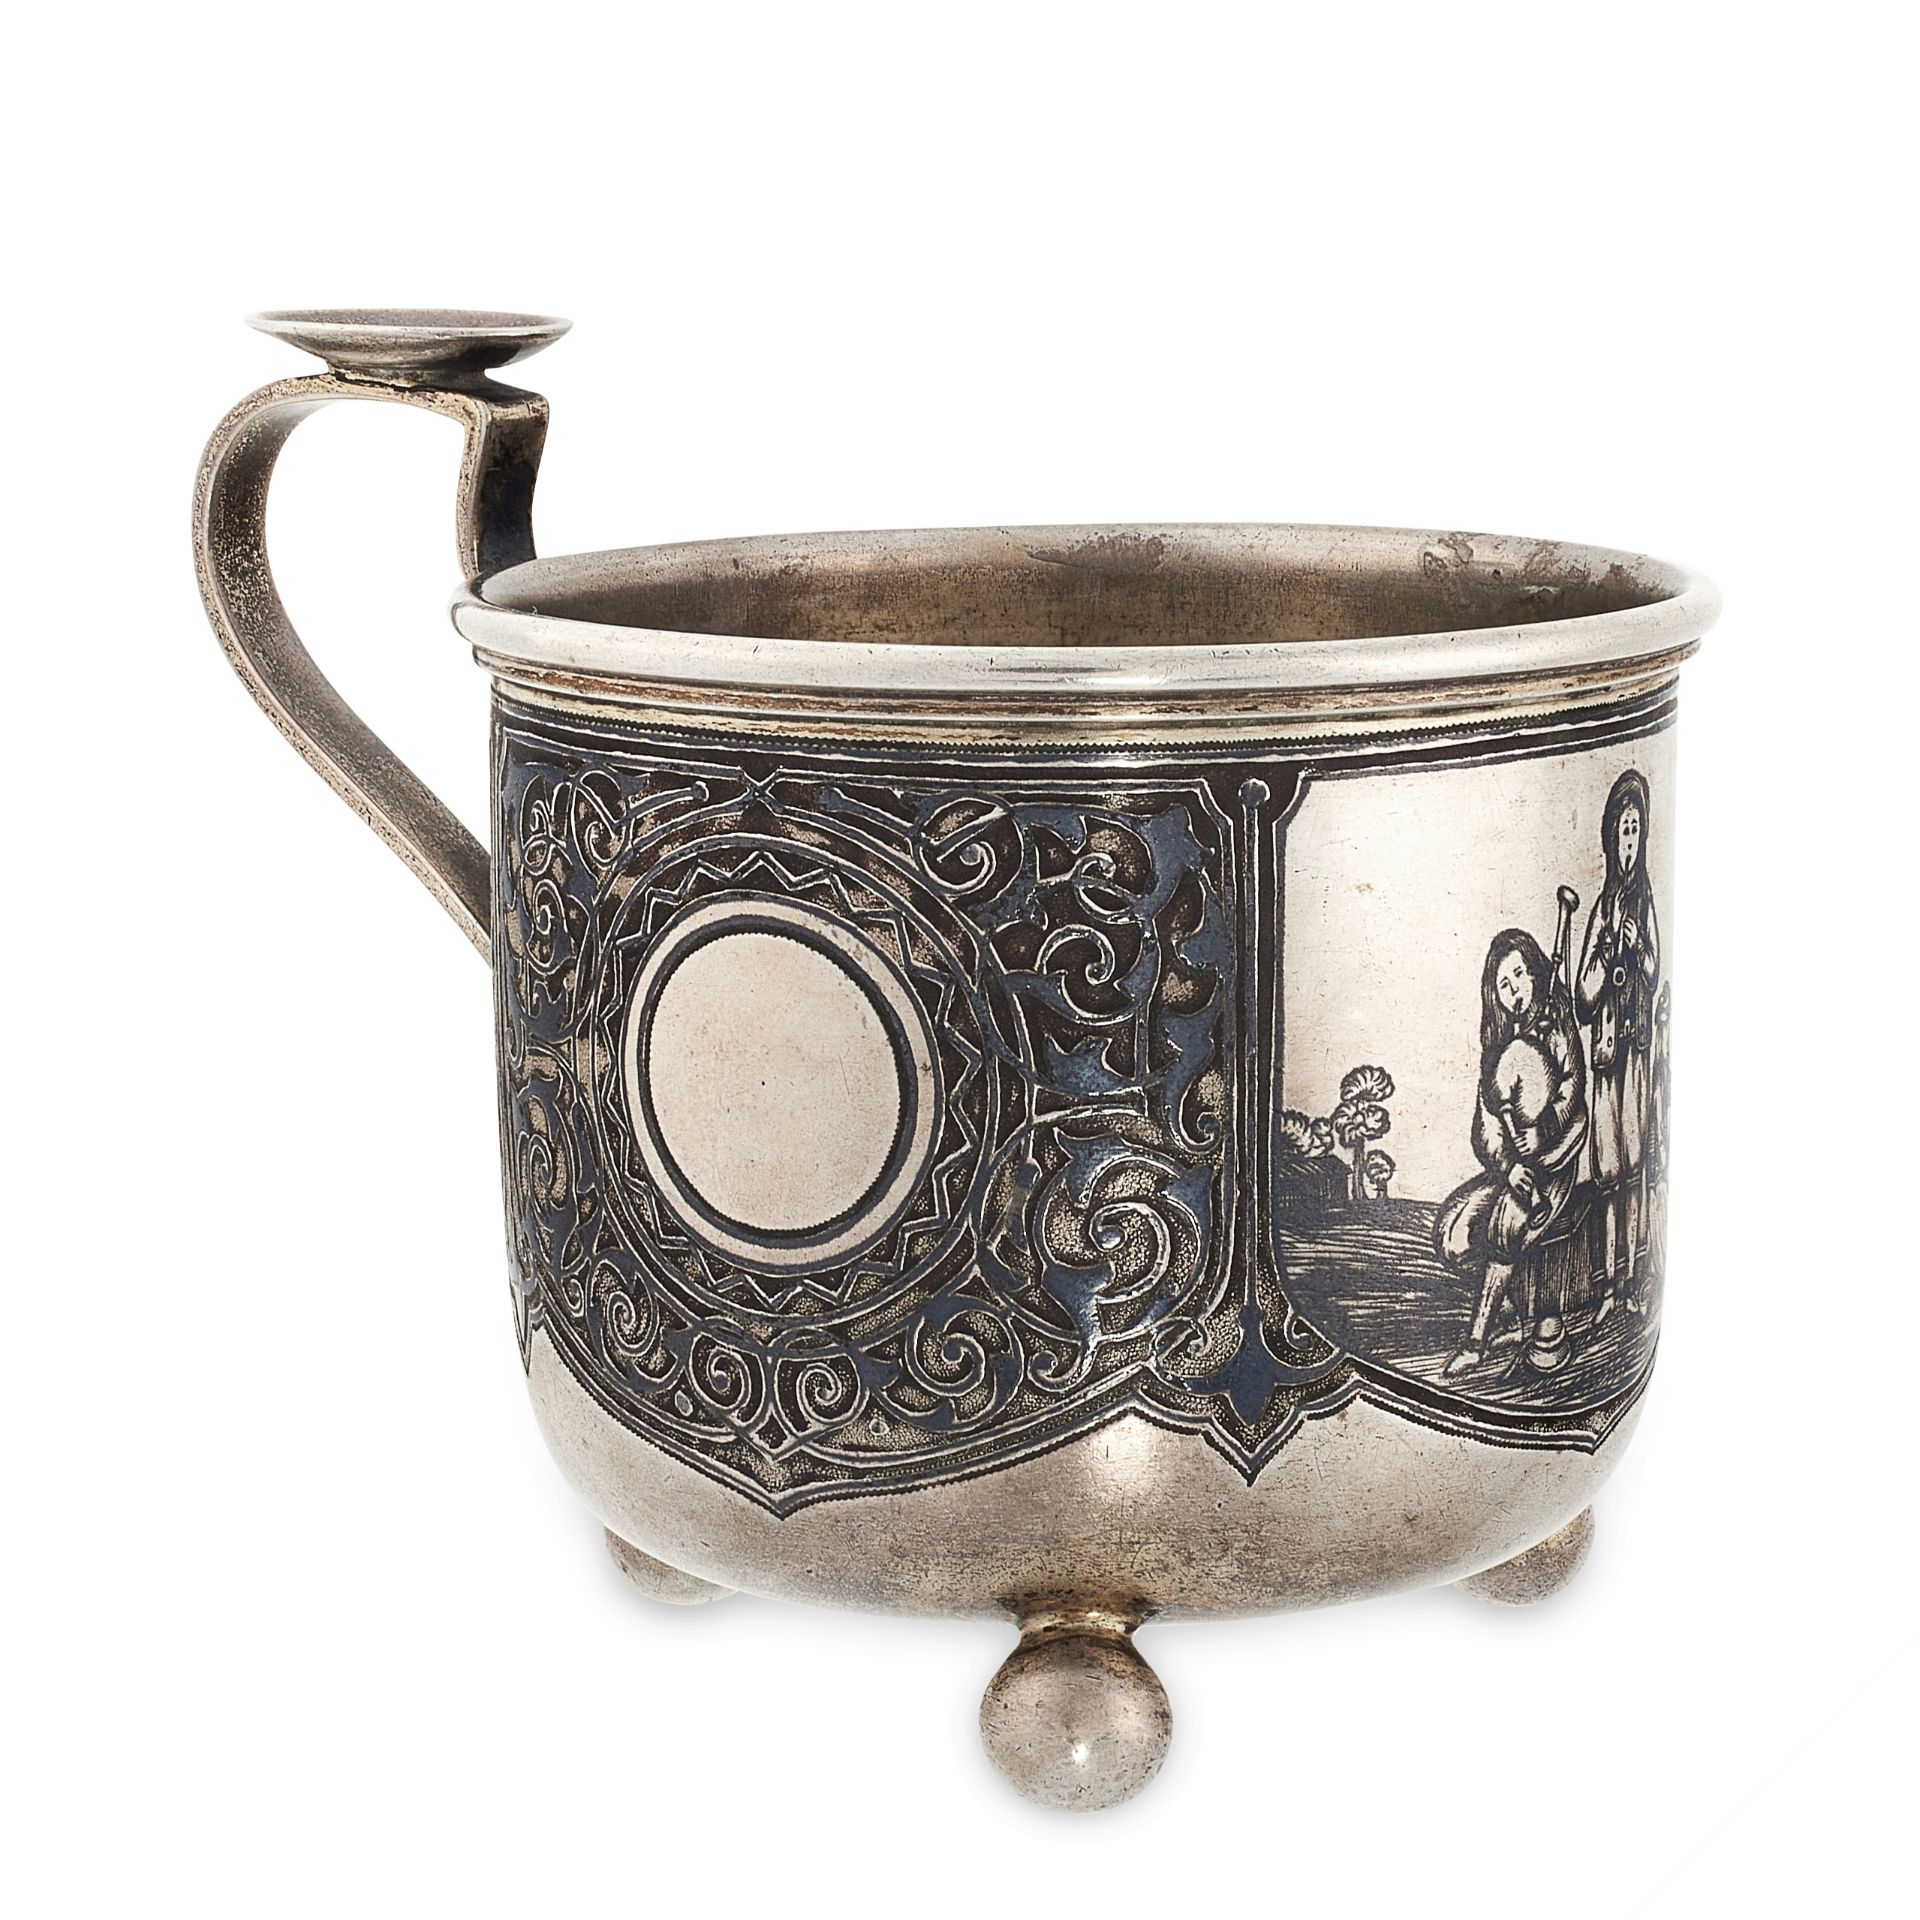 AN ANTIQUE IMPERIAL RUSSIAN NIELLO TEA GLASS HOLDER, MOSCOW 1870 in 84 zolotnik silver, the body